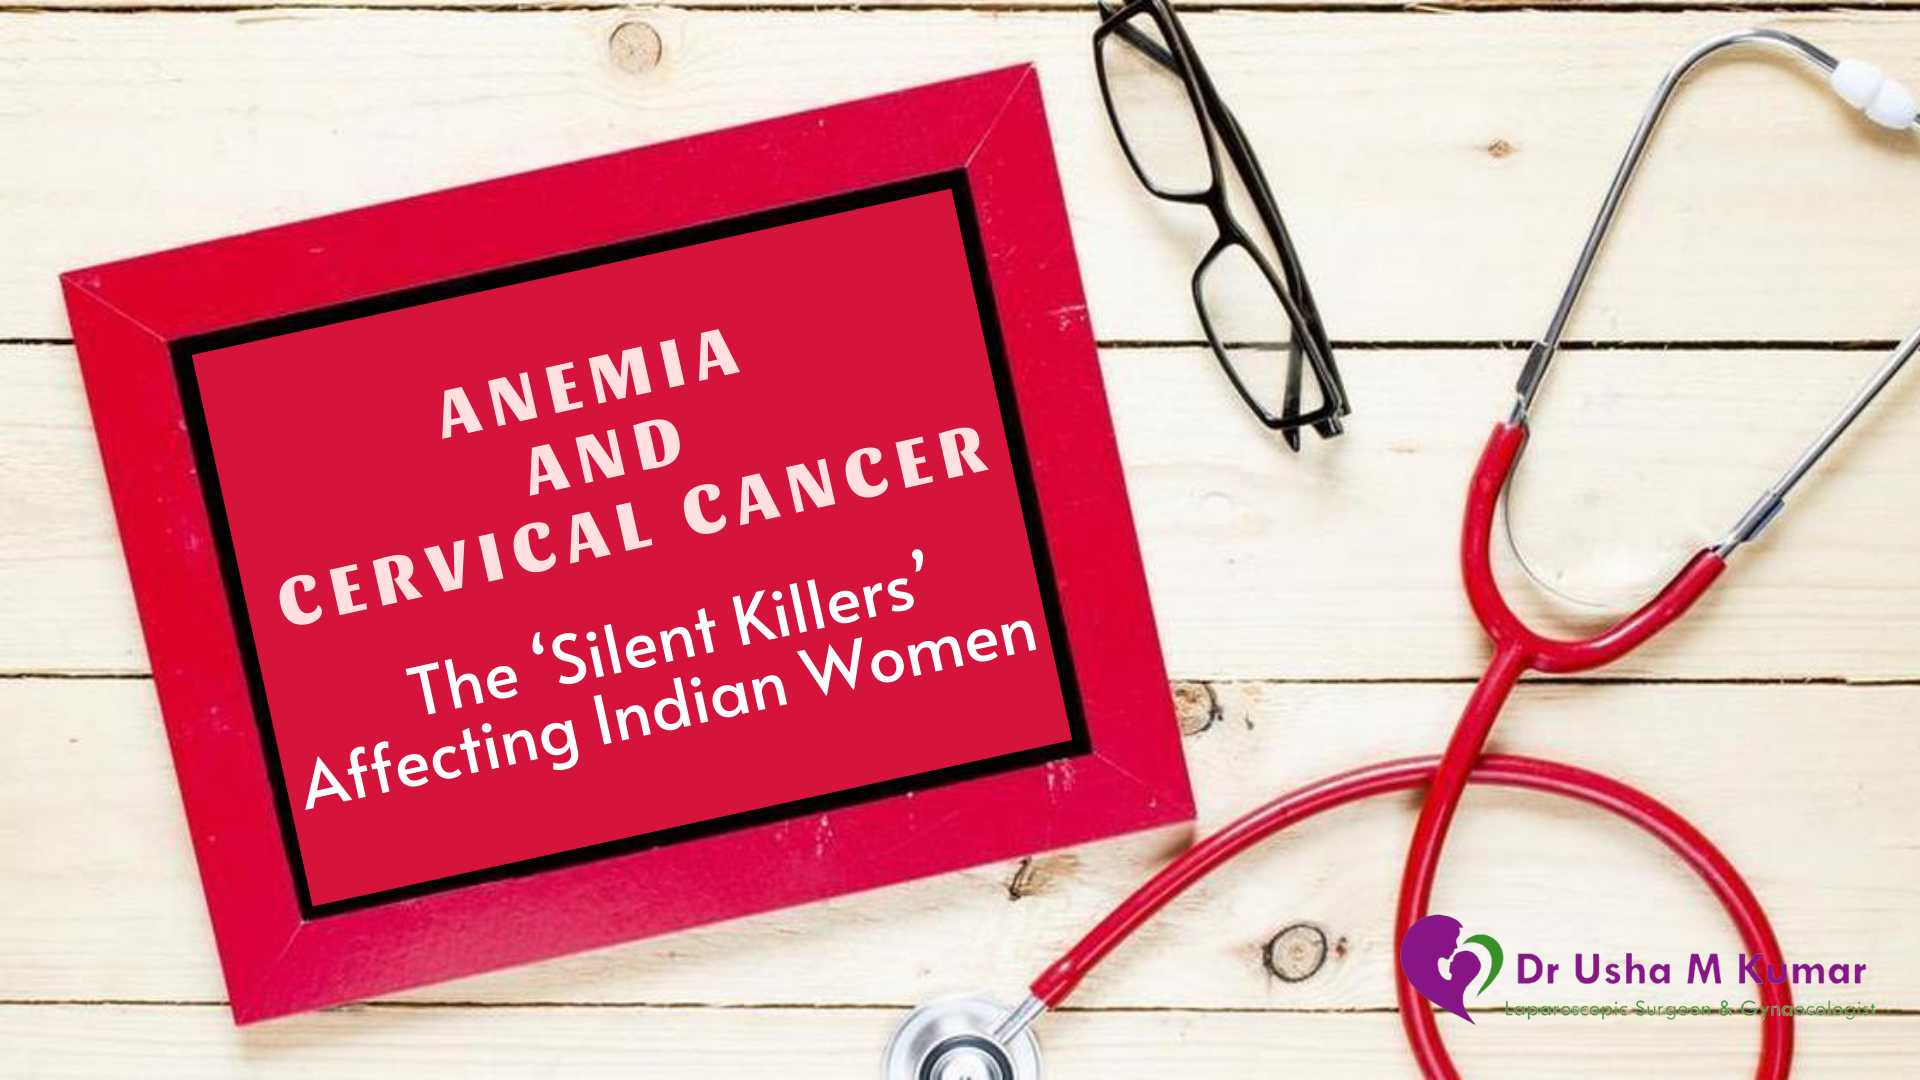 Anemia and Cervical Cancer